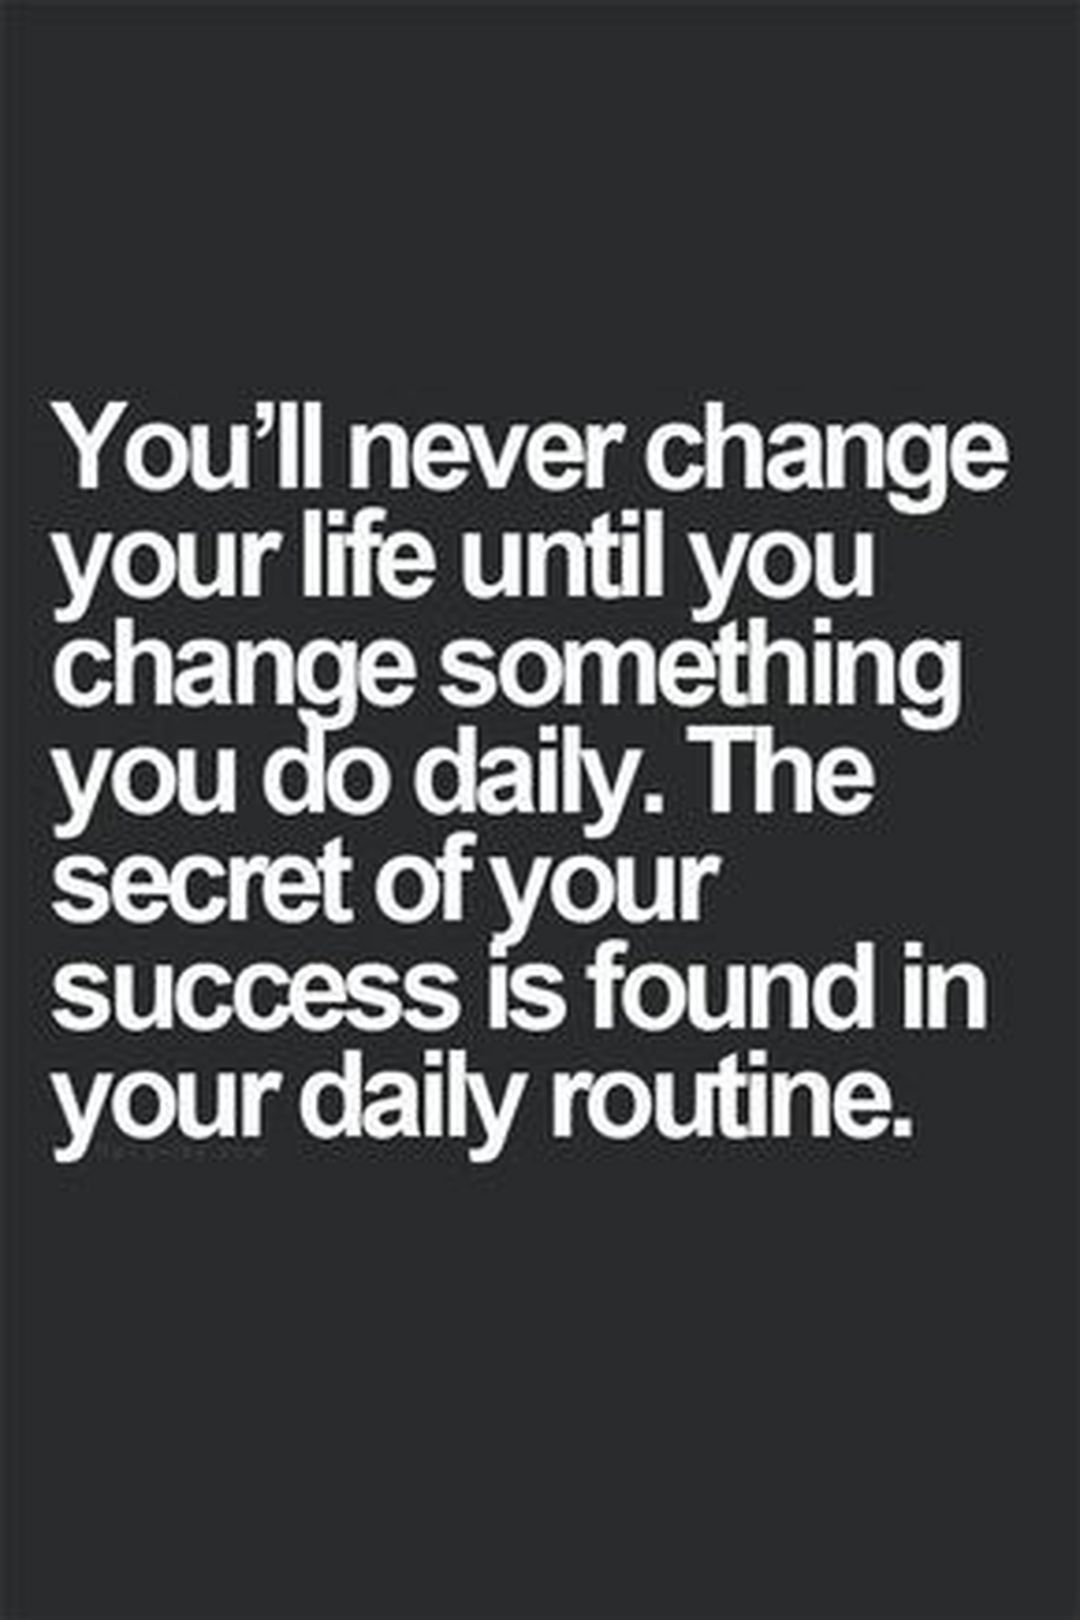 Quotes About Change In Life 45 Best Motivational Quotes You Have To Read To Make Your Life